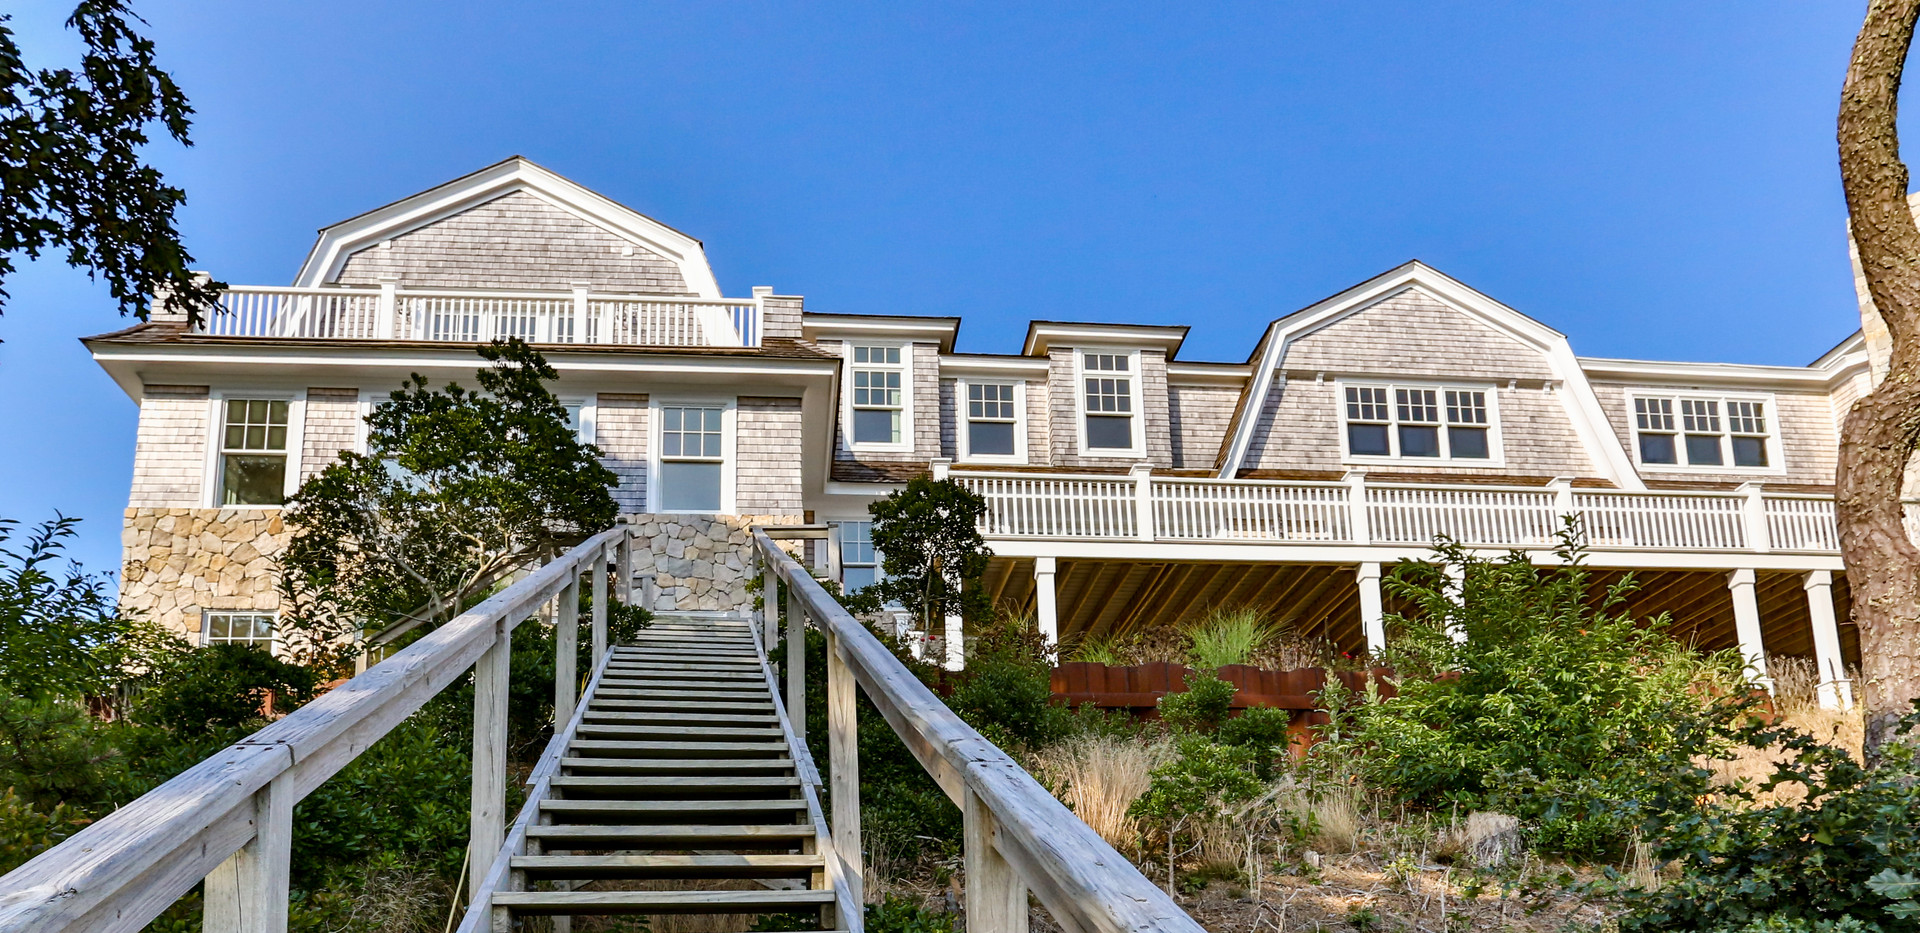 House from Dock.jpg